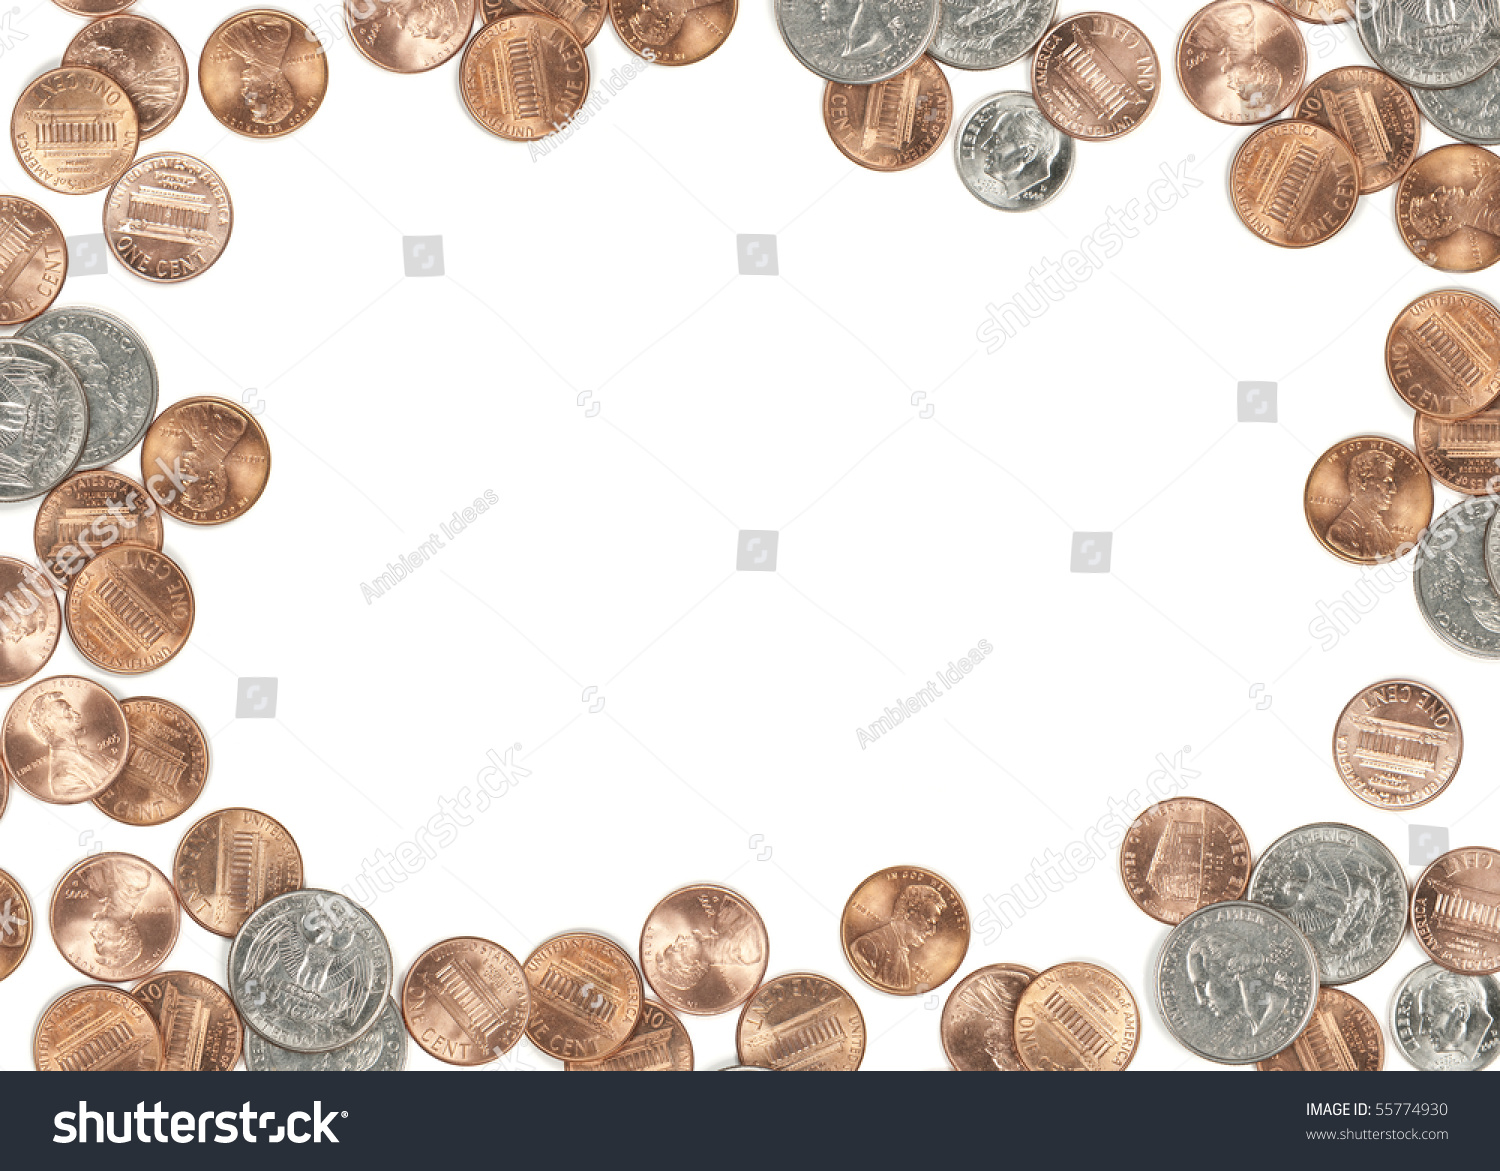 coins background coin cash - photo #15